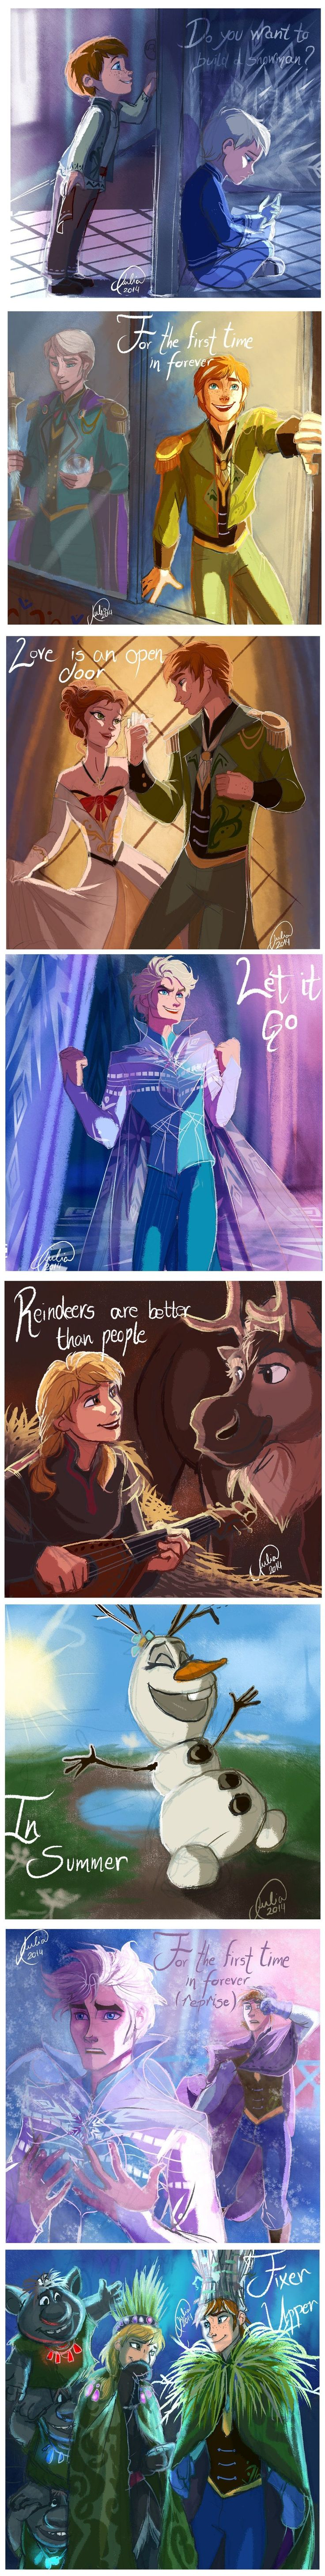 I kinda want to see a switched version of Frozen now.... The boys are super cute..... <<< ok, but the outfits are super wierd